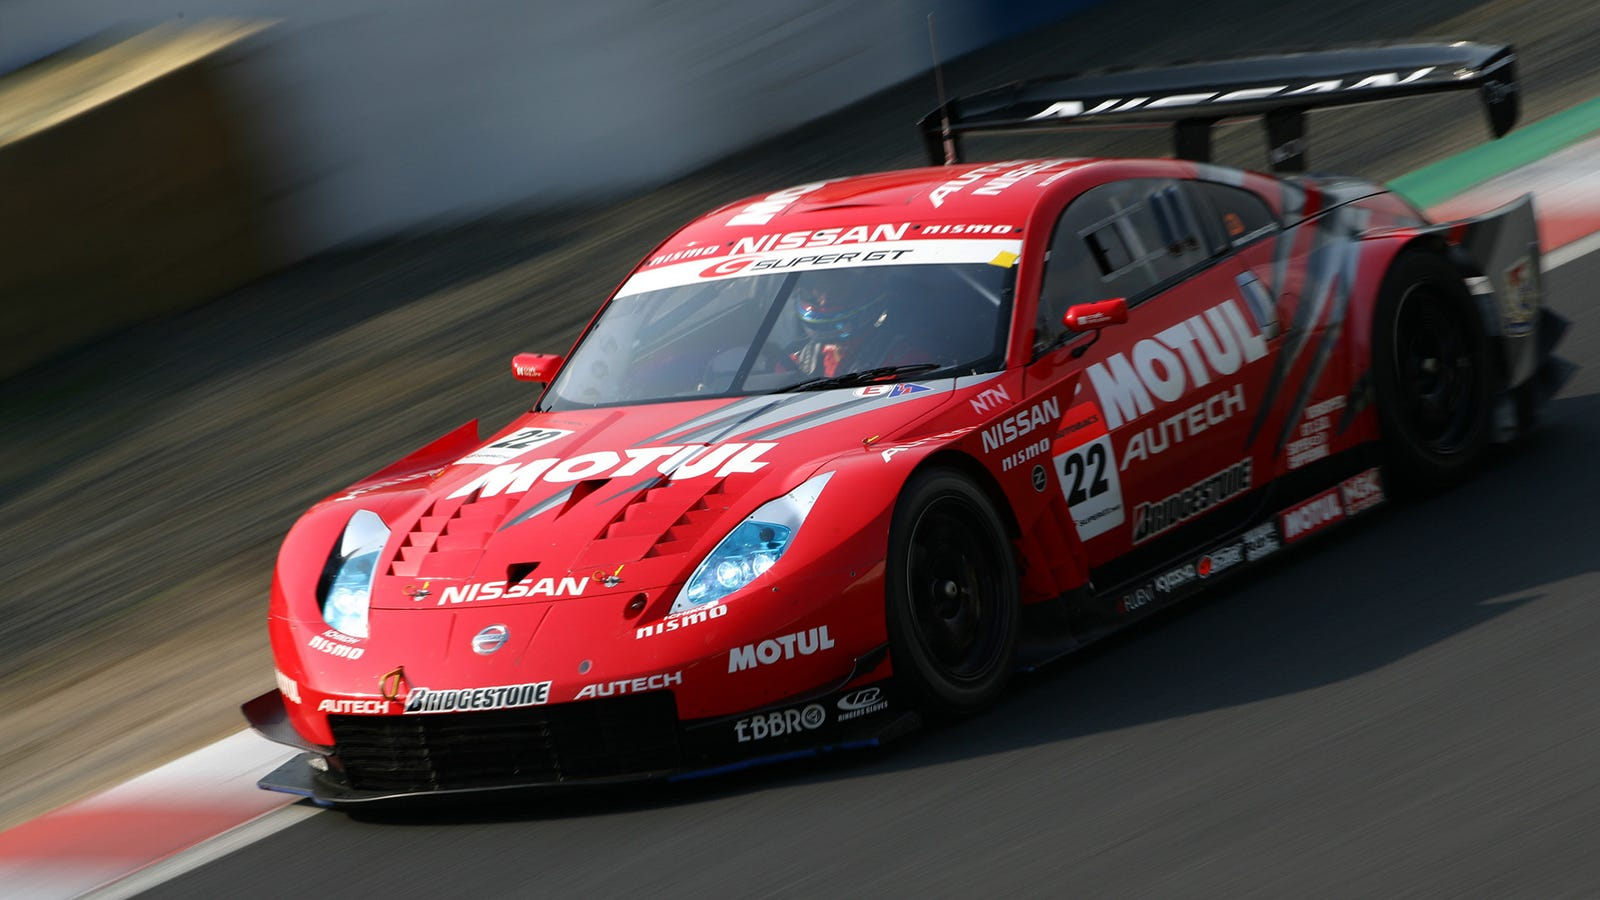 This Is A 2006 Nissan 350Z That Raced In The Top GT500 Rung Of Japanu0027s SUPER  GT Touring Car Series. Itu0027s Like A Regular 350Z, Only Completely Different.